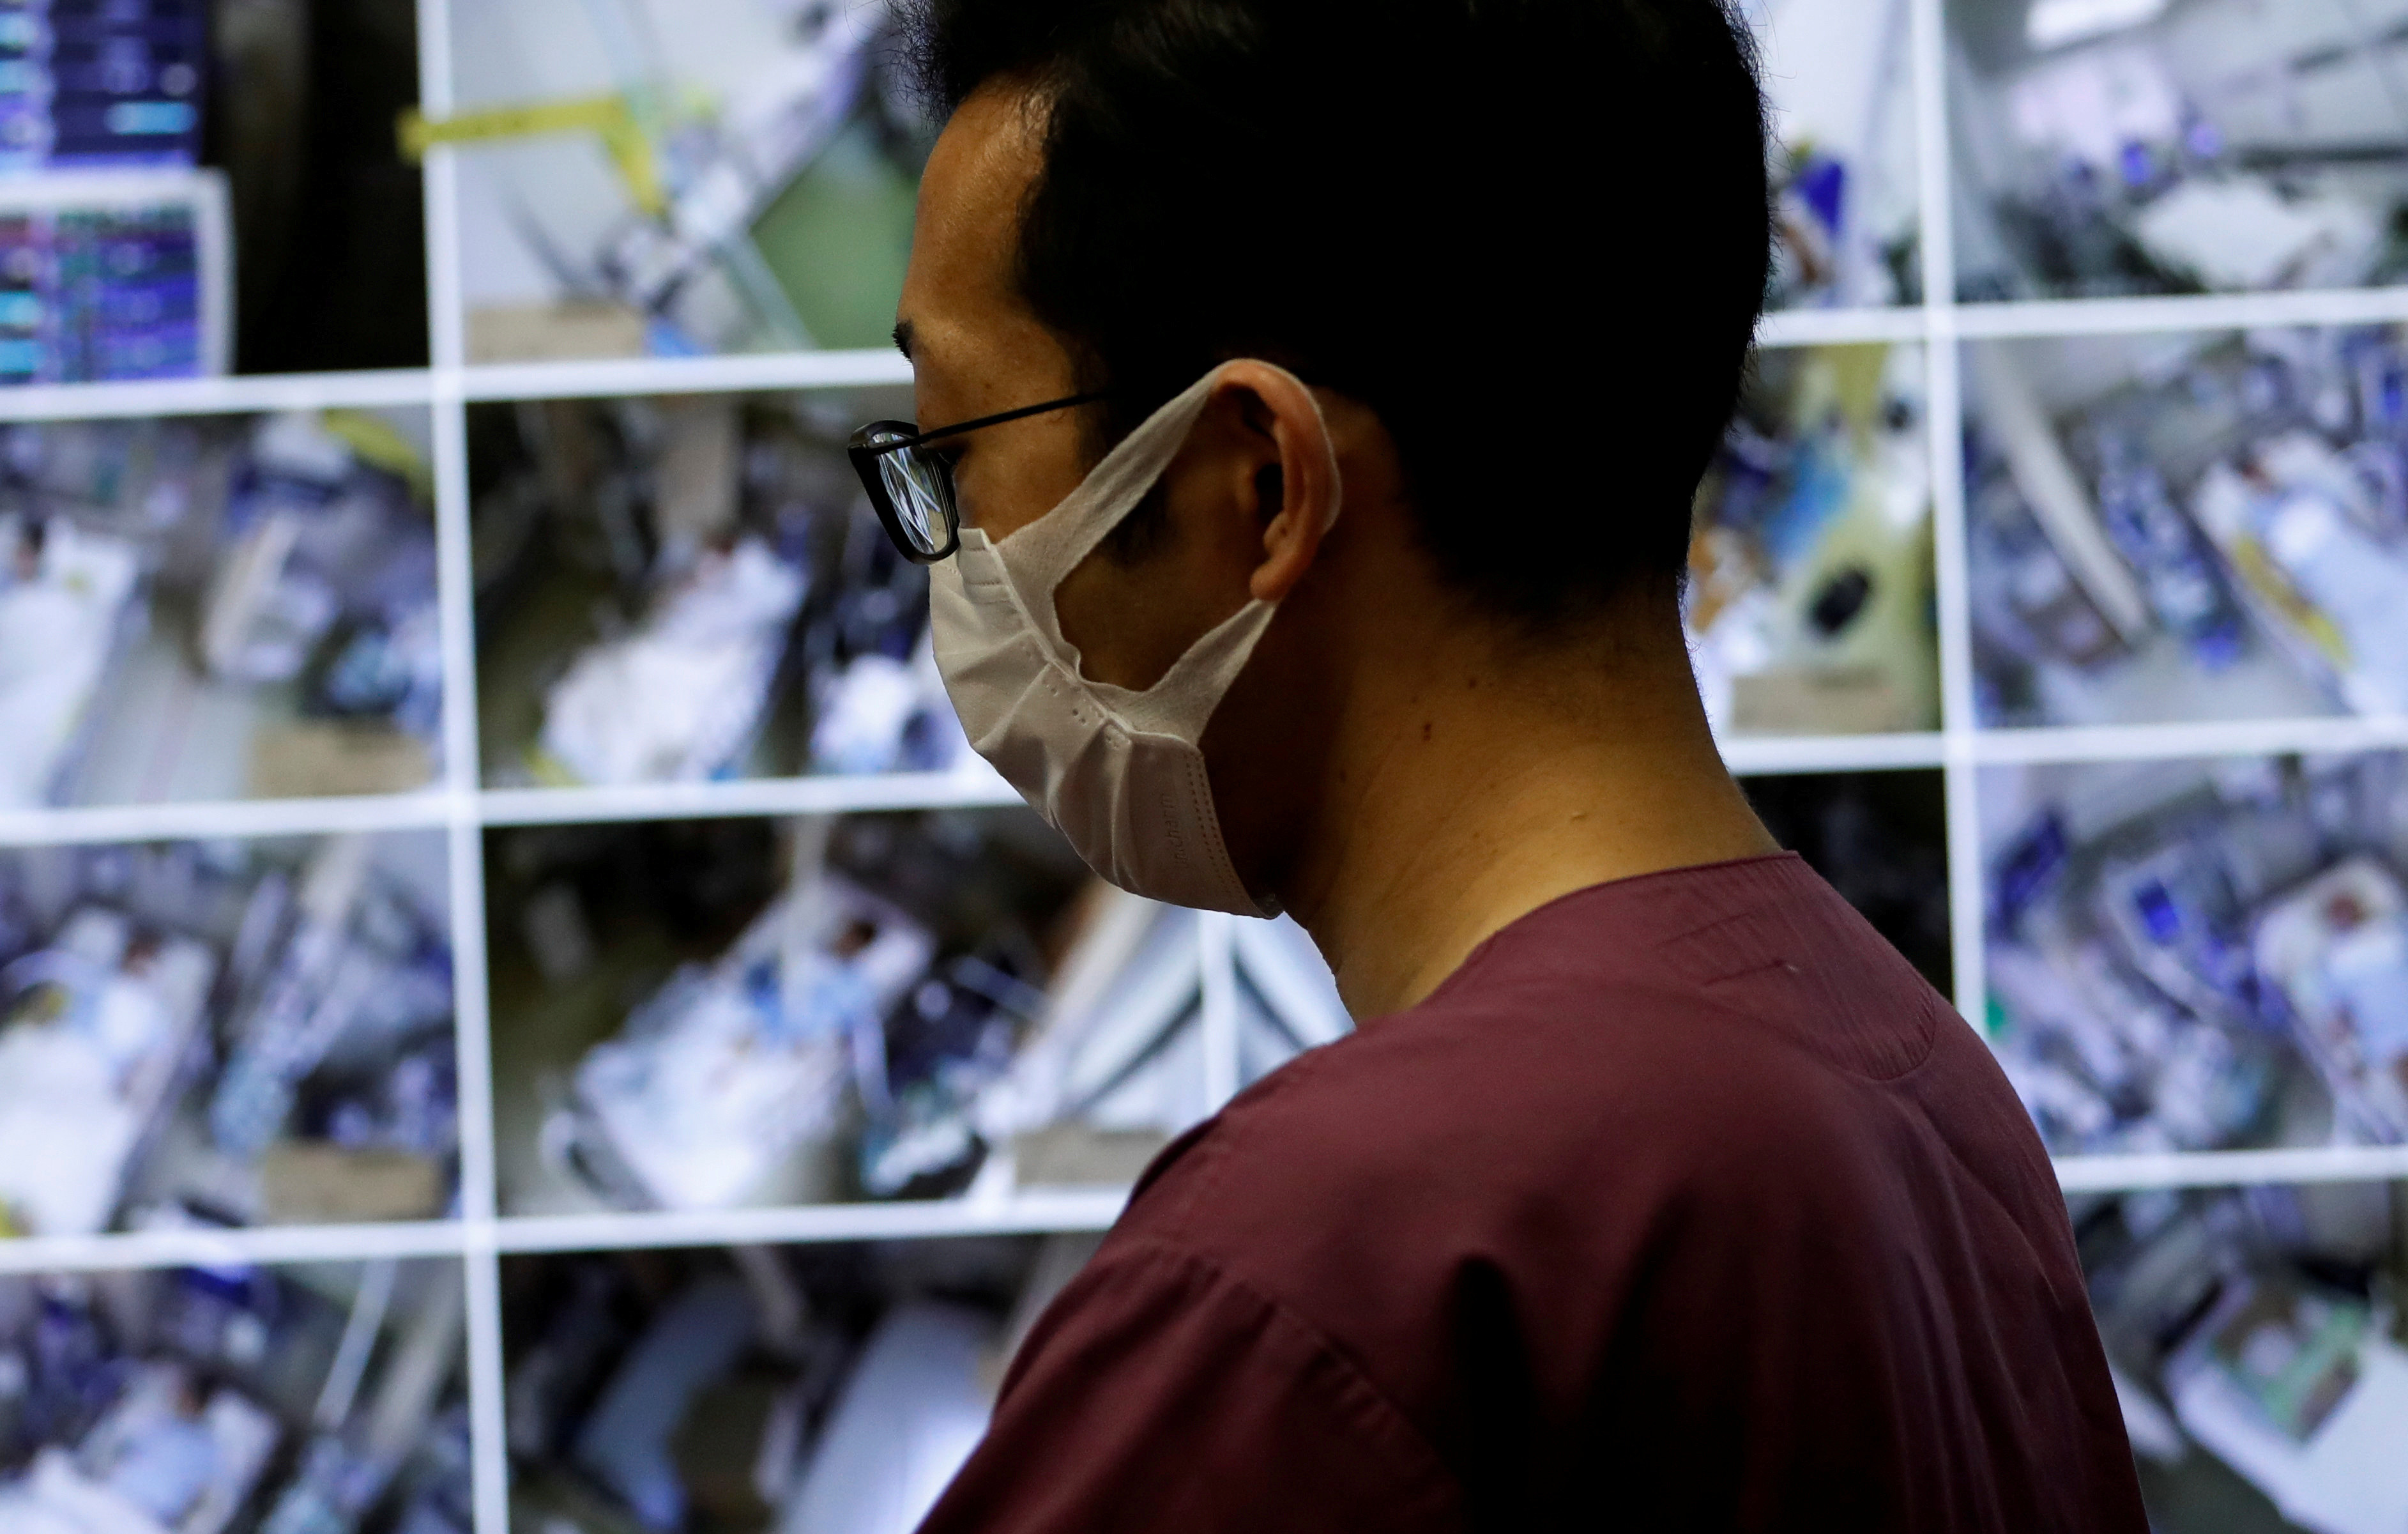 A medical worker wearing a protective face mask monitors remotely the live footages of patients at the Intensive Care Unit (ICU) ward for coronavirus disease (COVID-19) patients at St. Marianna Medical University Hospital in Kawasaki, south of Tokyo, Japan May 4, 2020.  REUTERS/Issei Kato     TPX IMAGES OF THE DAY - RC2GHG9P1REO